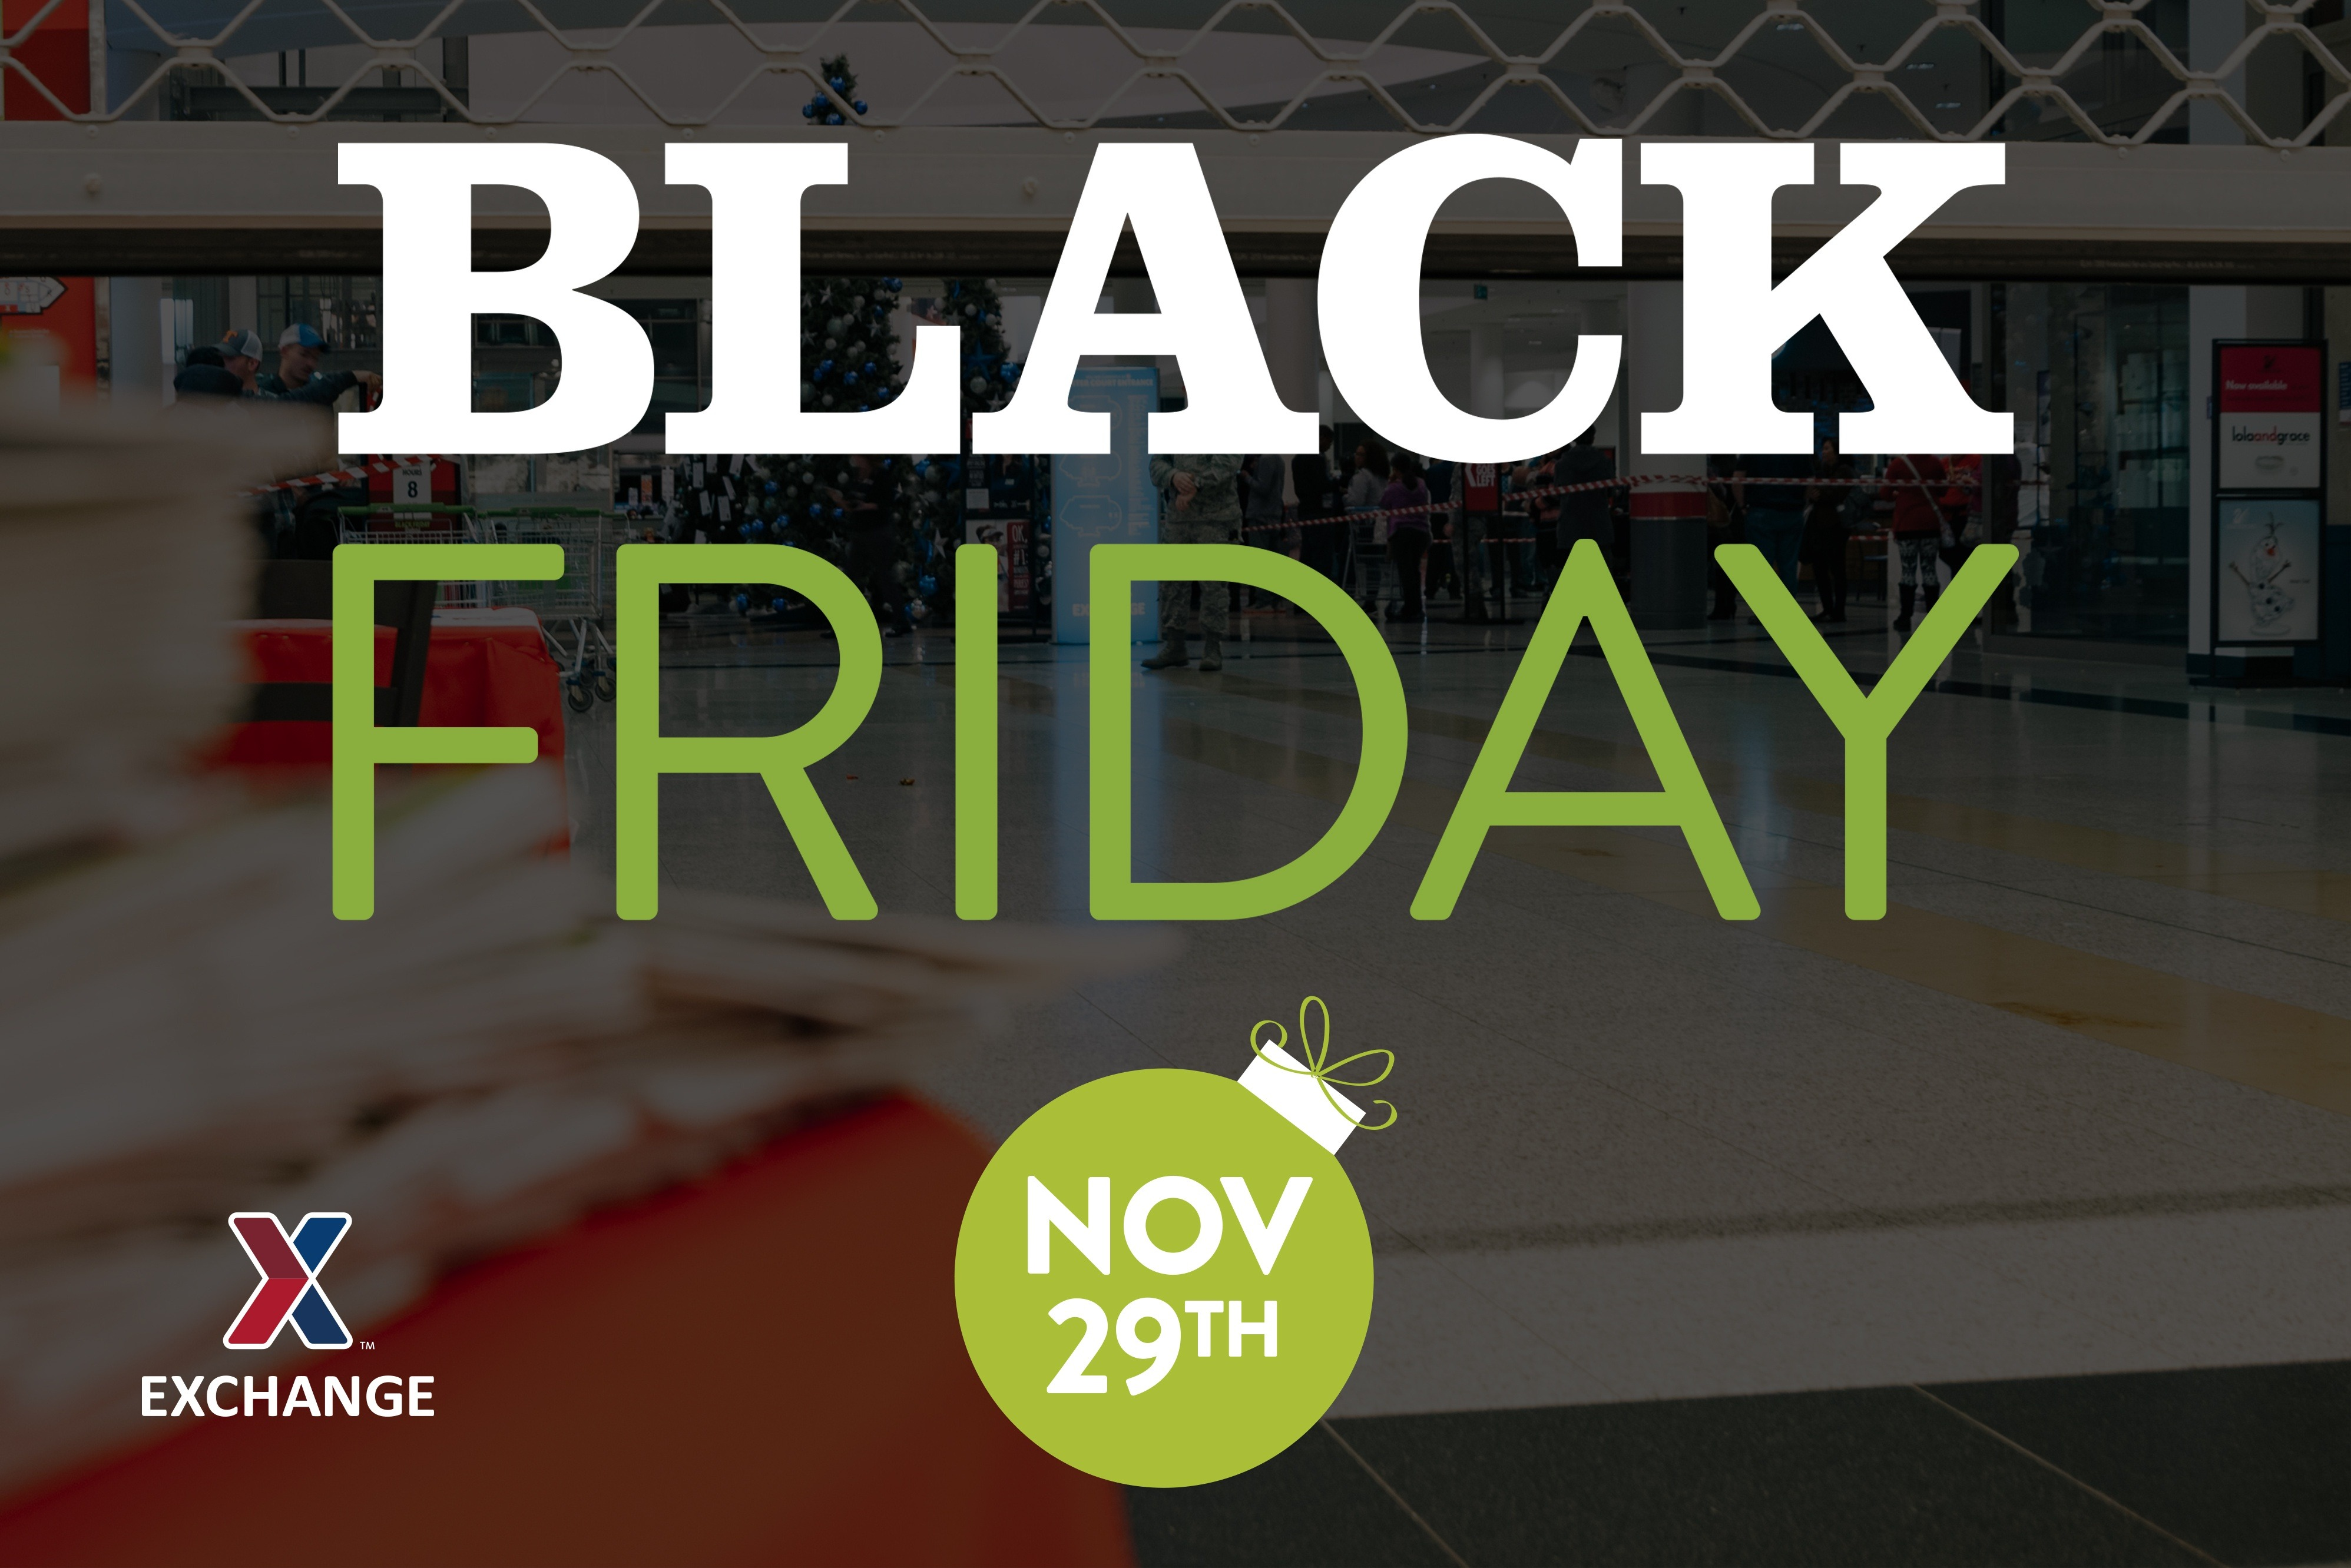 Exchange S Black Friday Deals Start At Midnight Central Time Online Misawa Exchange Opens At 7 A M Stripes Japan